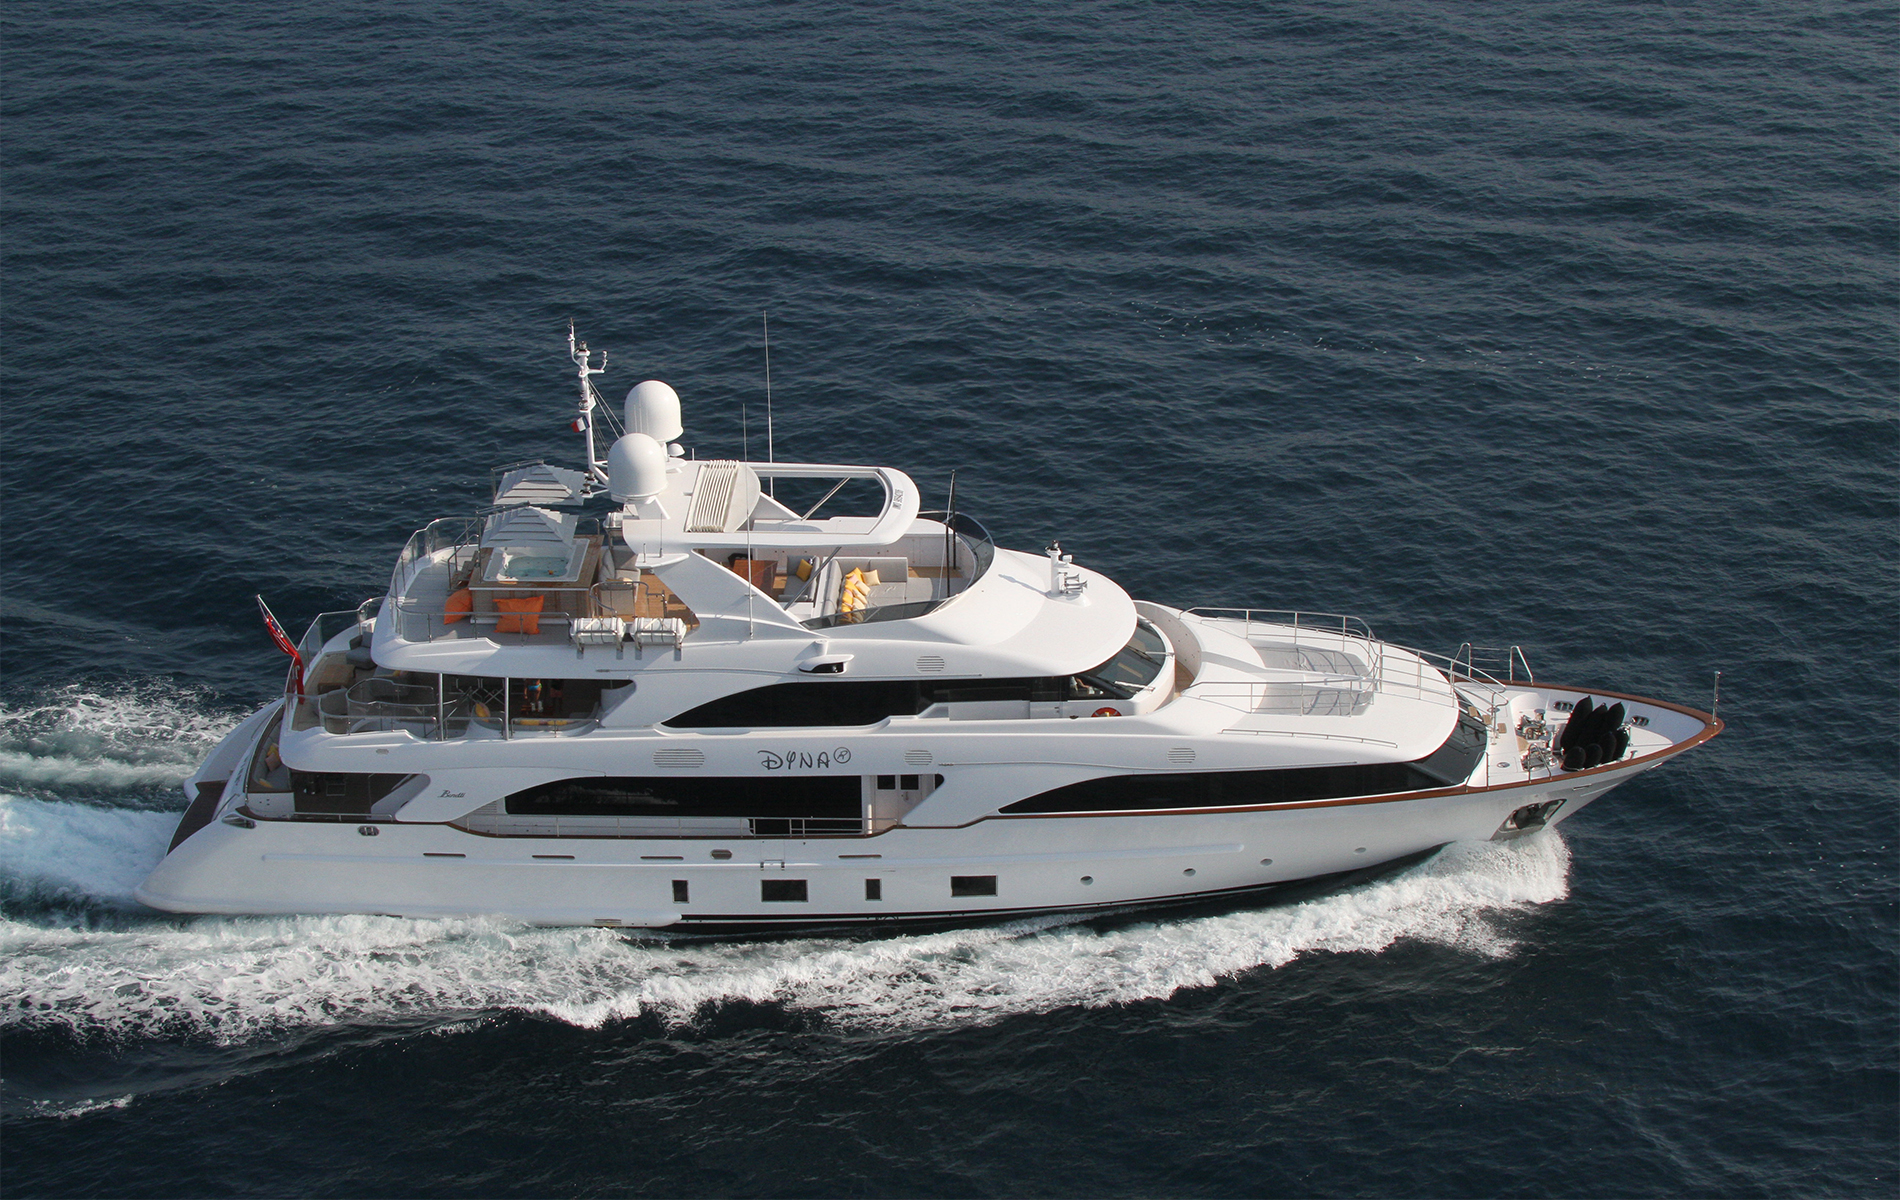 Motor Yacht DYNA® for Charter with SuperYachtsMonaco